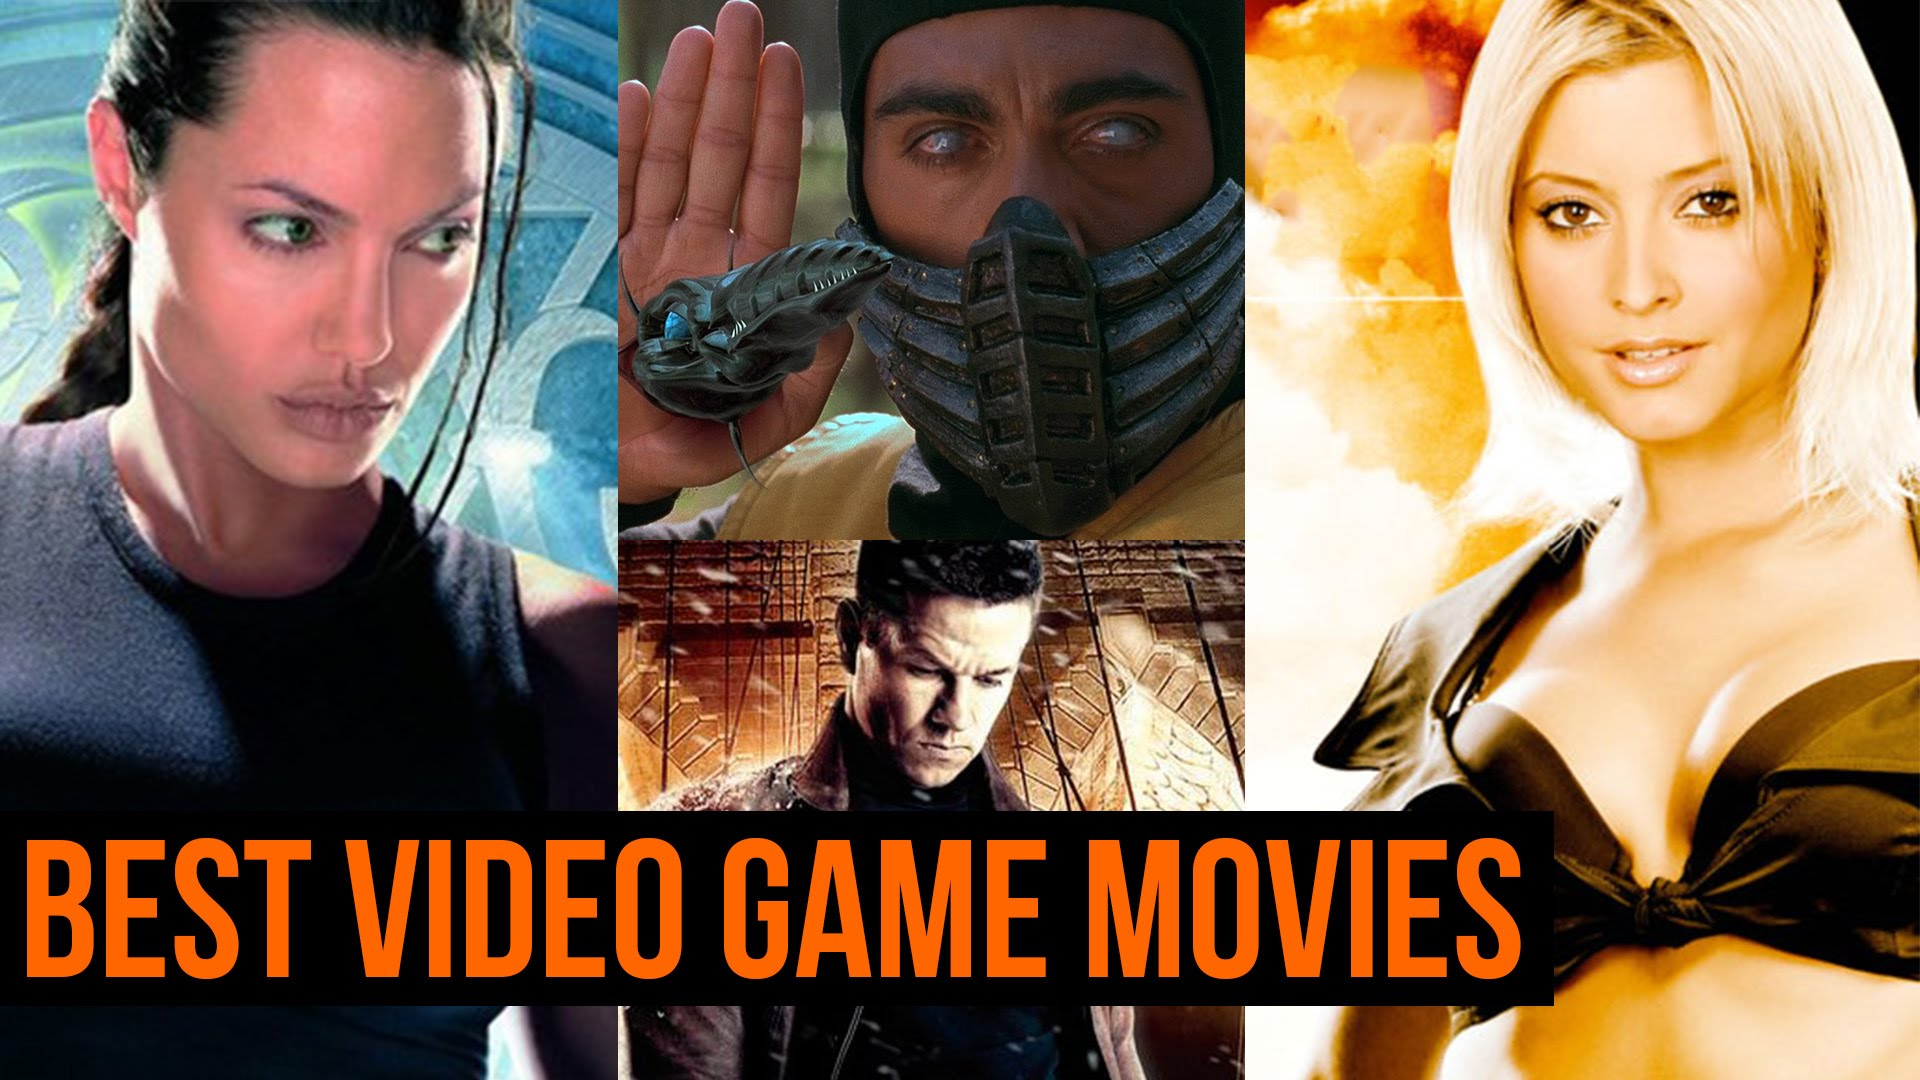 Video Game Movies - We have a very special / spooky guest in the studio this week. With his back round in film we had to sit down and talk about the three best and worst video game movies of all time.